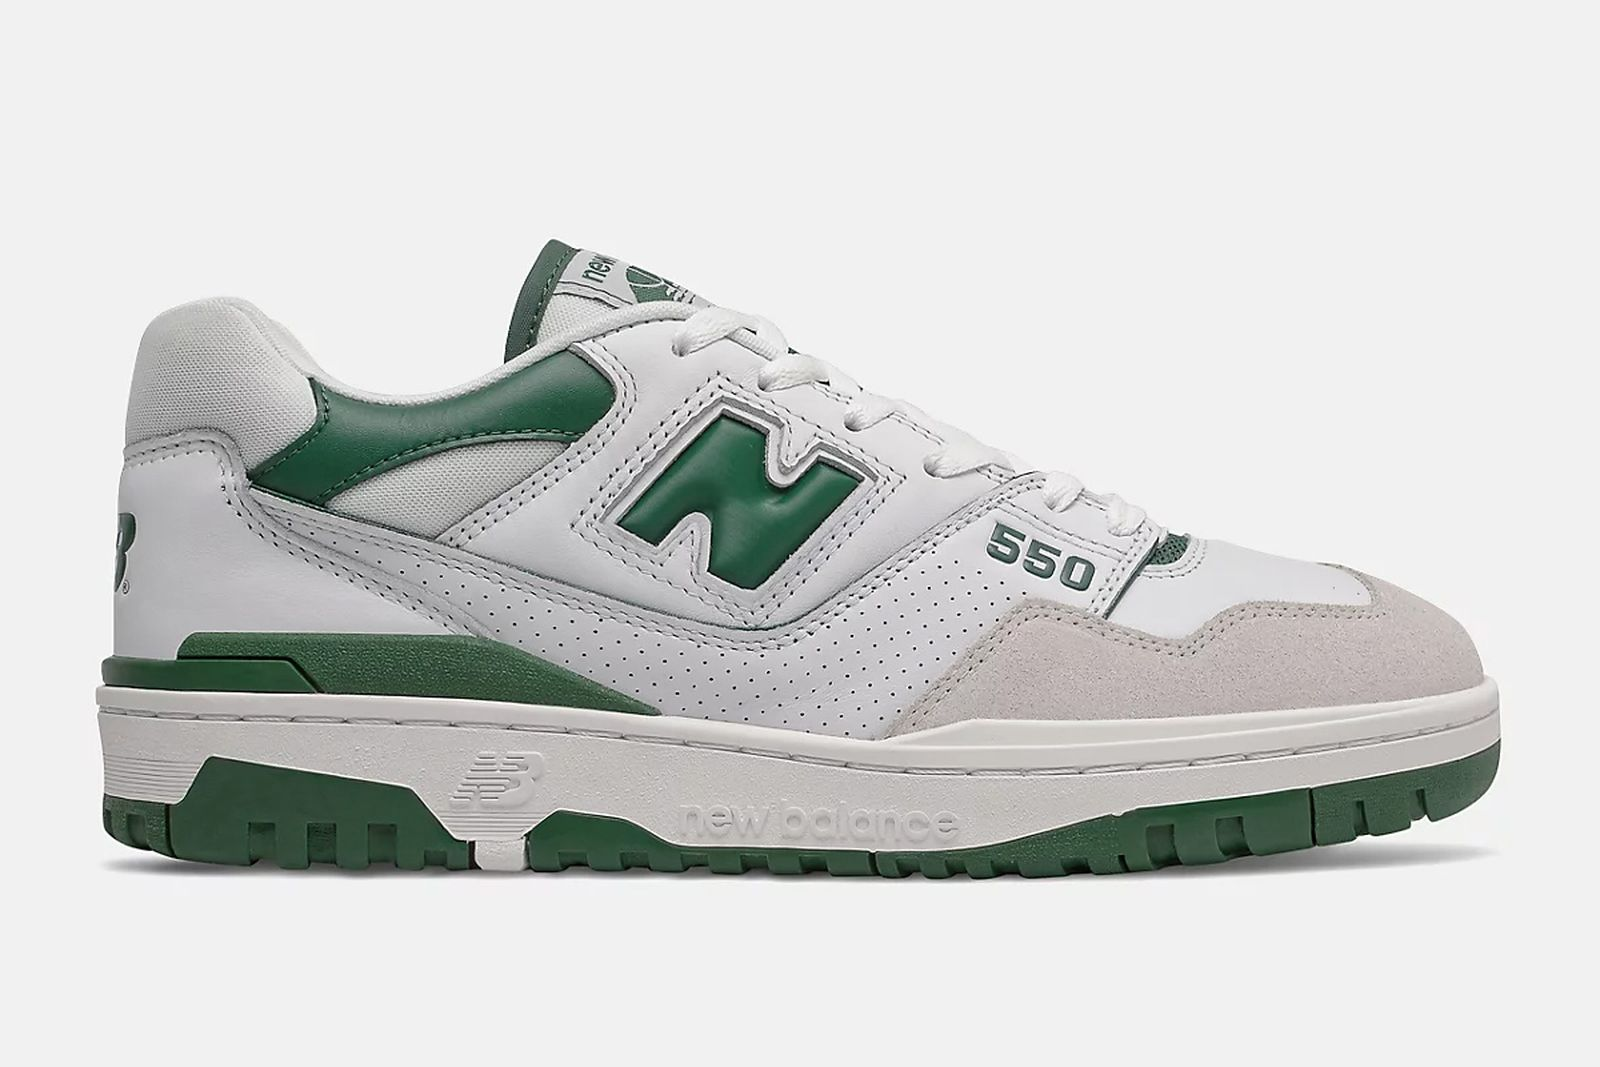 New Balance 550 June Colorways: Detailed Look & How to Buy